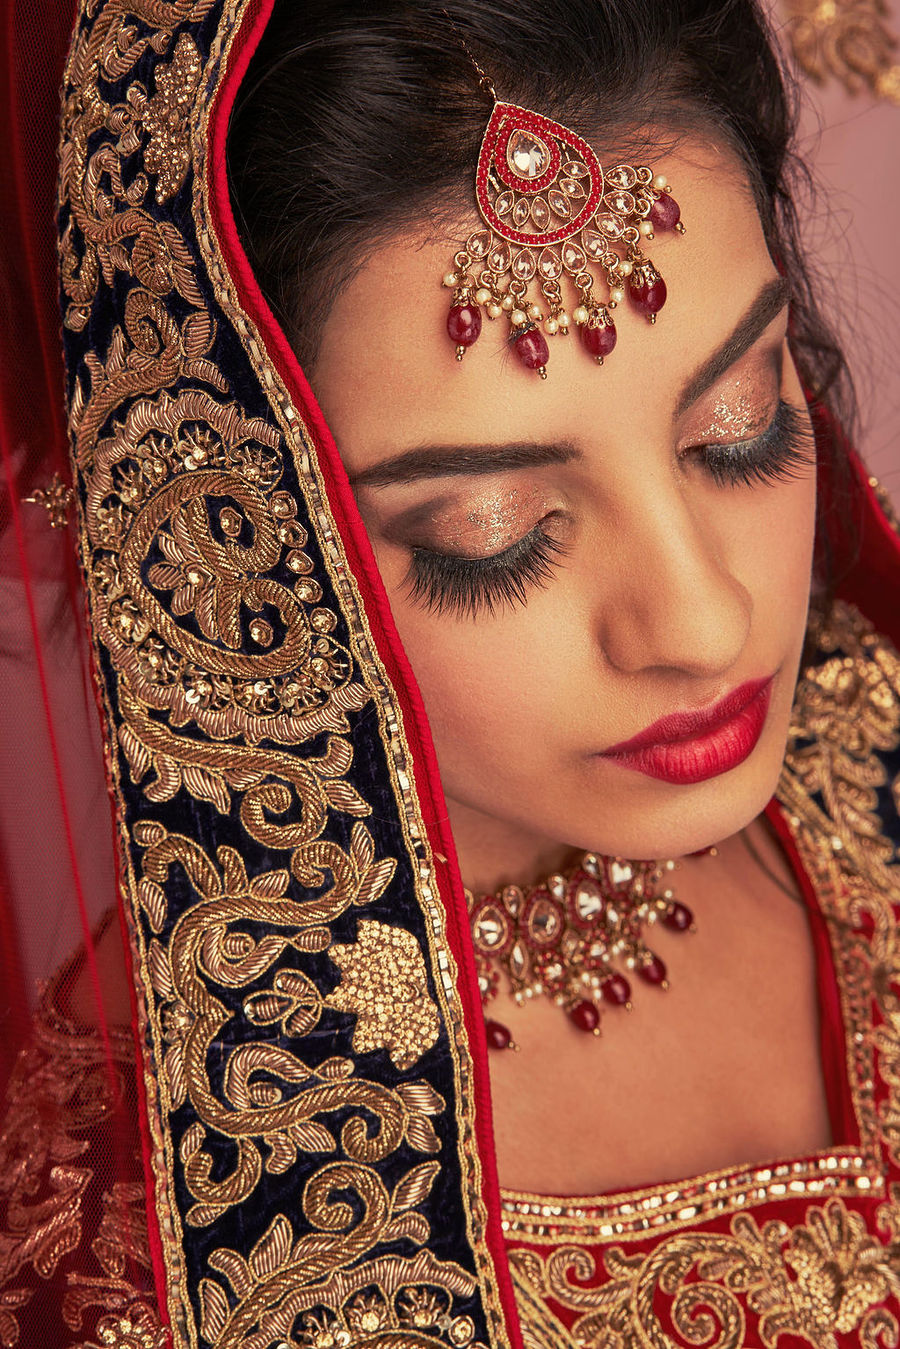 """ Beautiful Asian Bride "" / Photography by Martin Higgs, Makeup by DaisyBrightMakeUp, Post processing by Modelography, Hair styling by DaisyBrightMakeUp / Uploaded 4th January 2020 @ 09:09 PM"